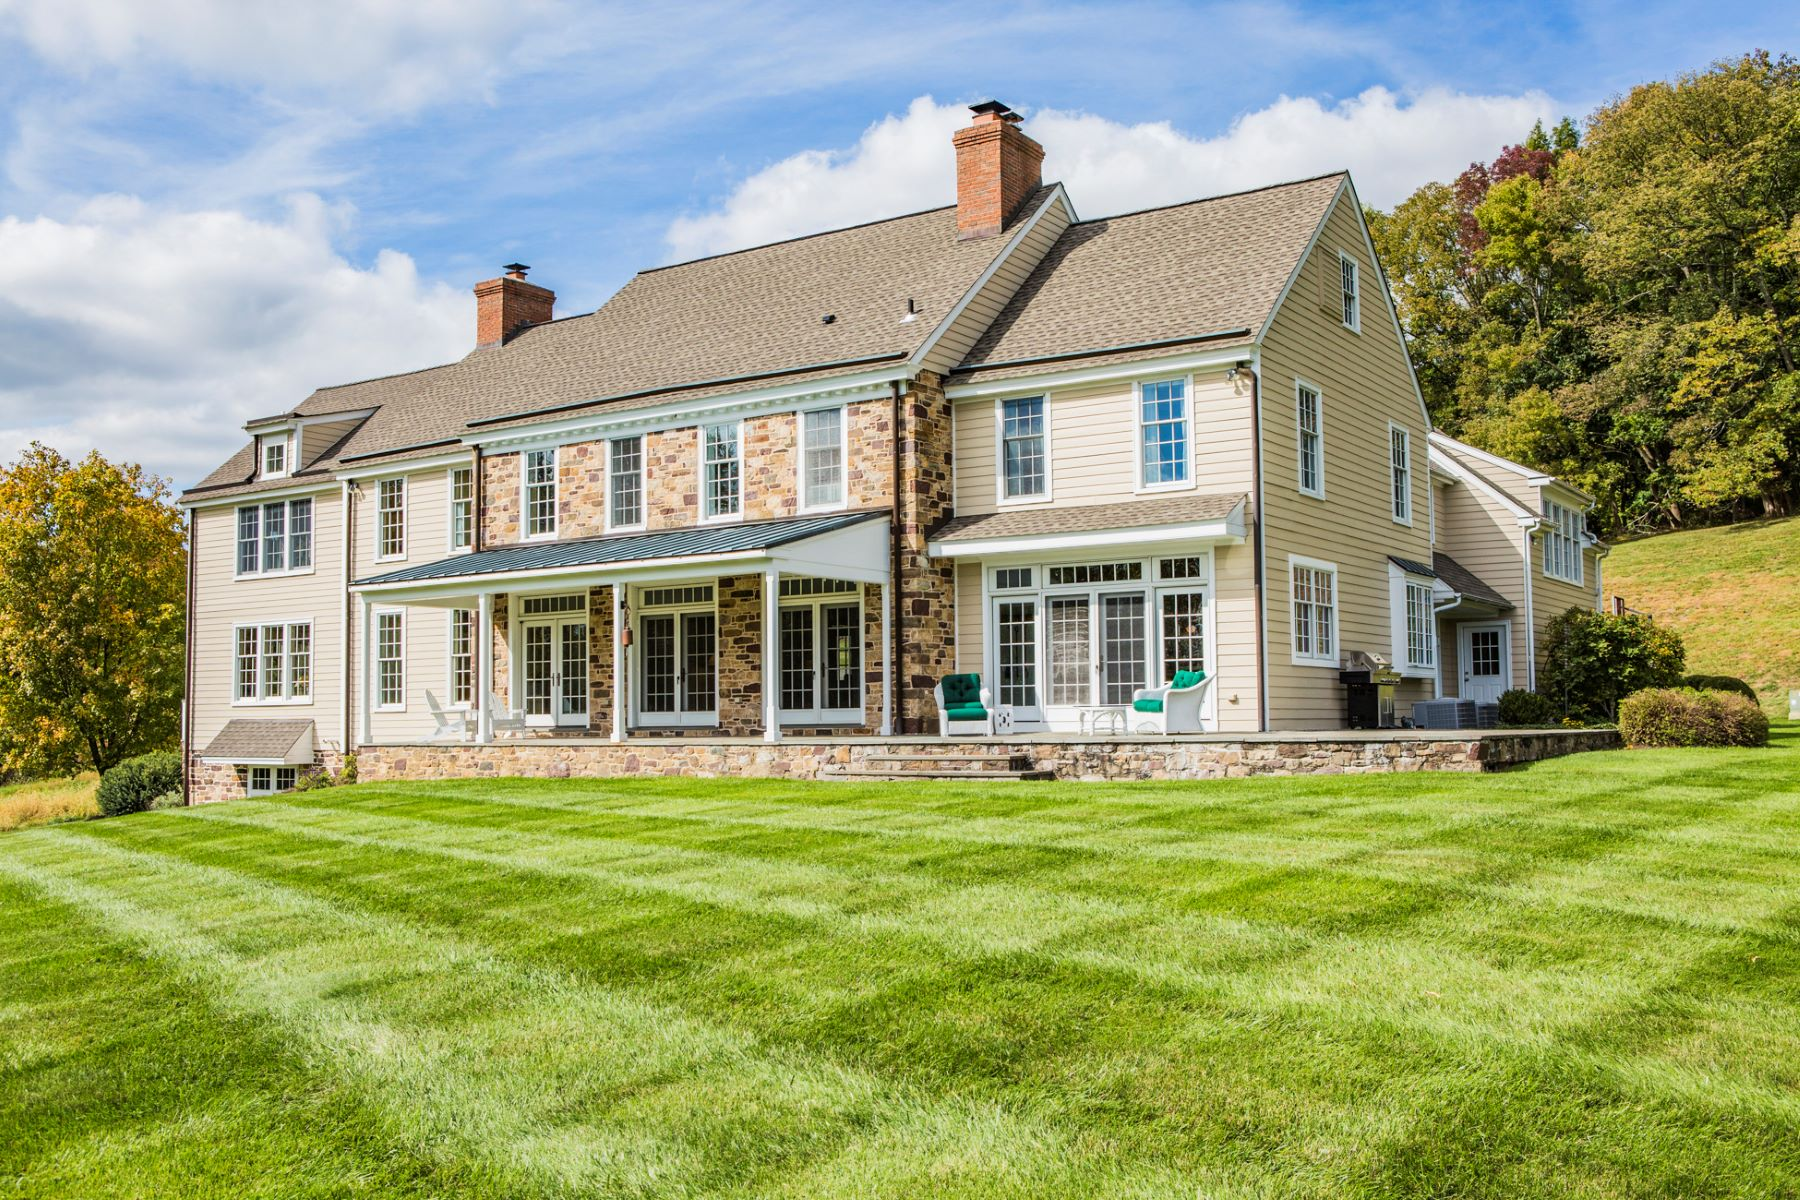 Additional photo for property listing at Impressive, Modern-Day Farmhouse on 12.75 Acres 46 Harbourton Woodsville Road, Pennington, New Jersey 08534 United States